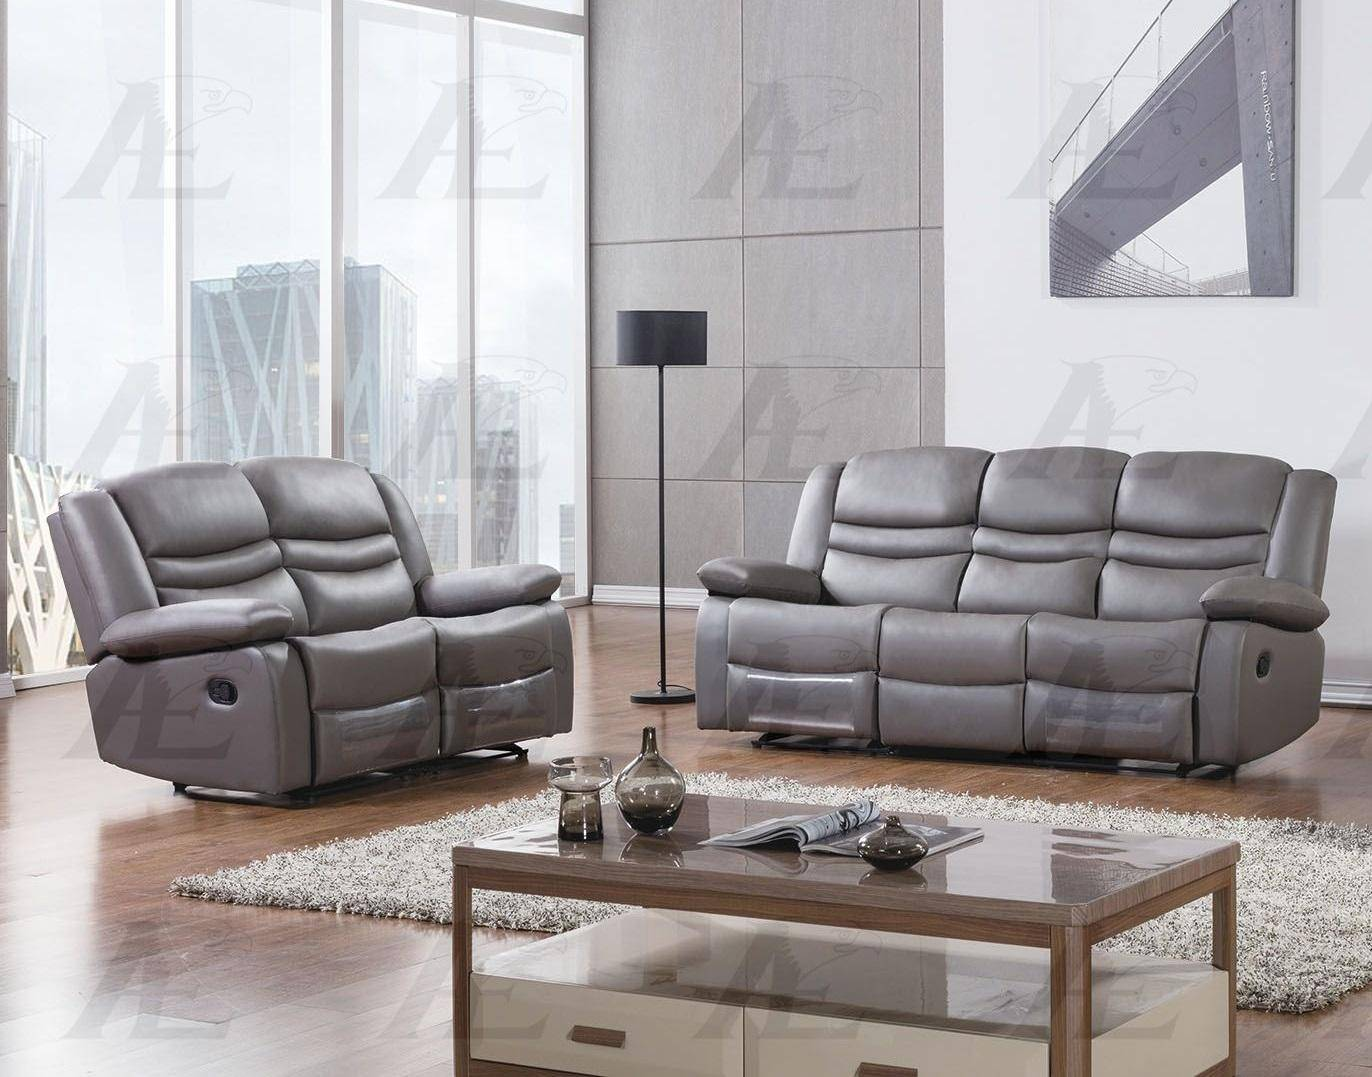 Peachy American Eagle Ae D823 Dg Dark Gray Modern Faux Leather Sofa Cjindustries Chair Design For Home Cjindustriesco